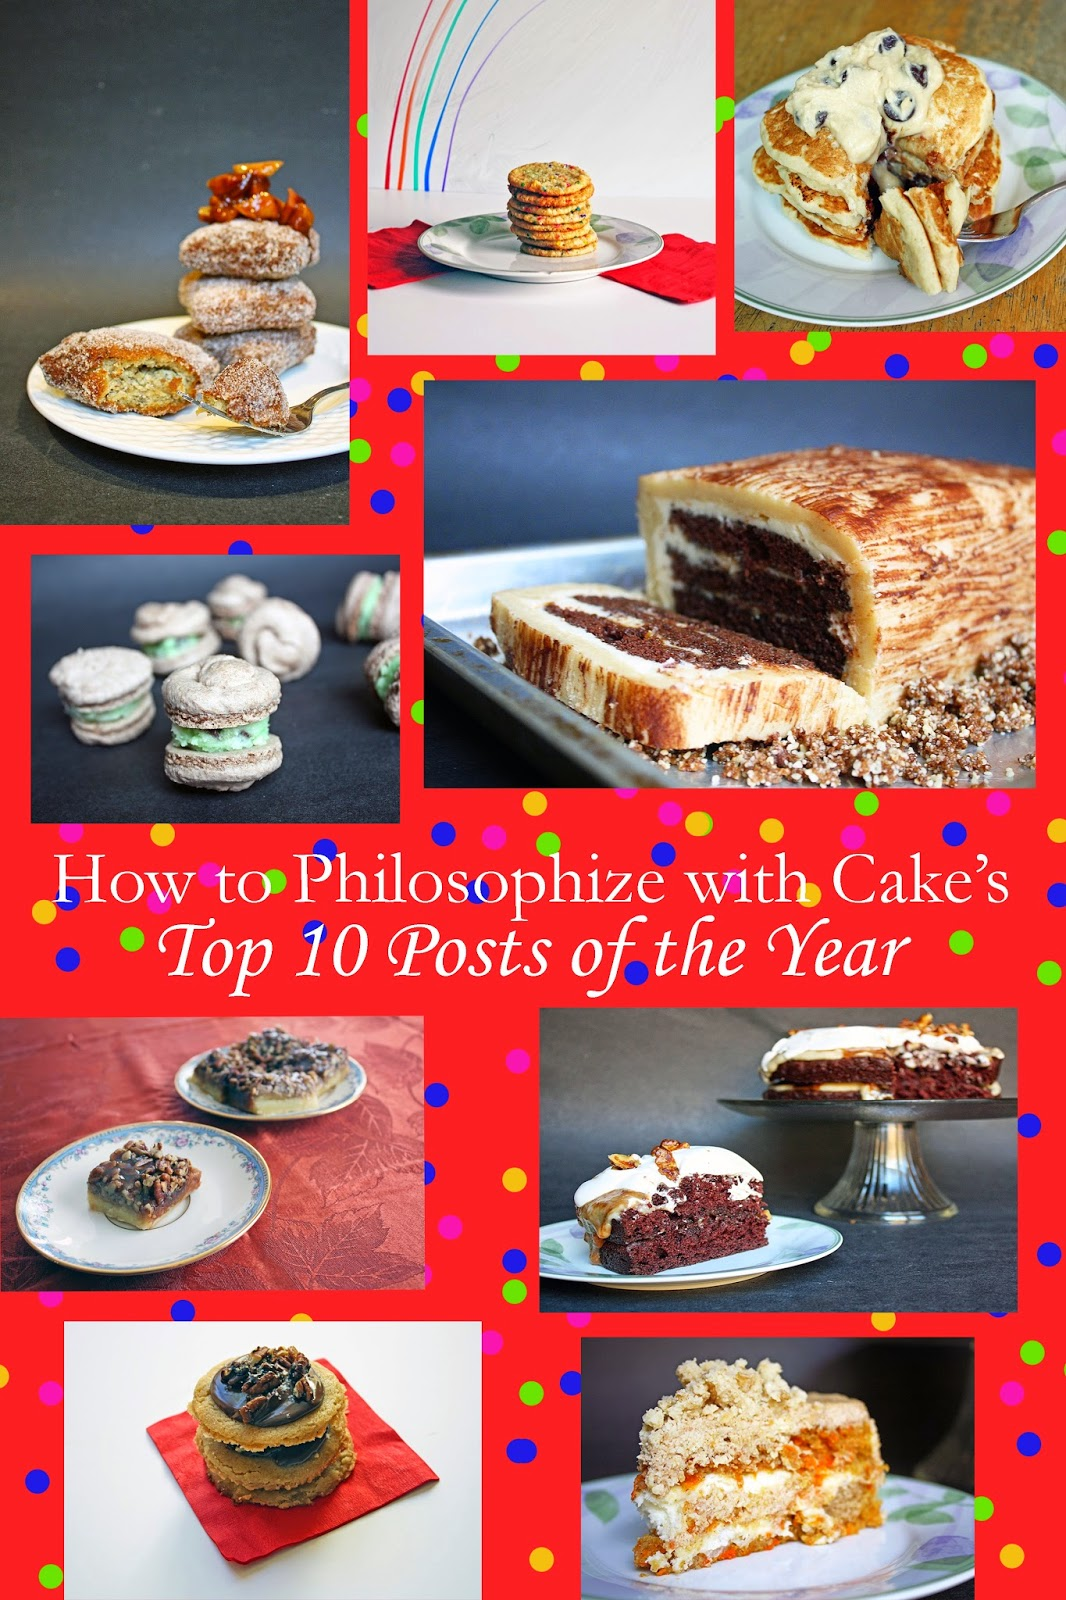 how to philosophize with cake's top 10 posts of the year